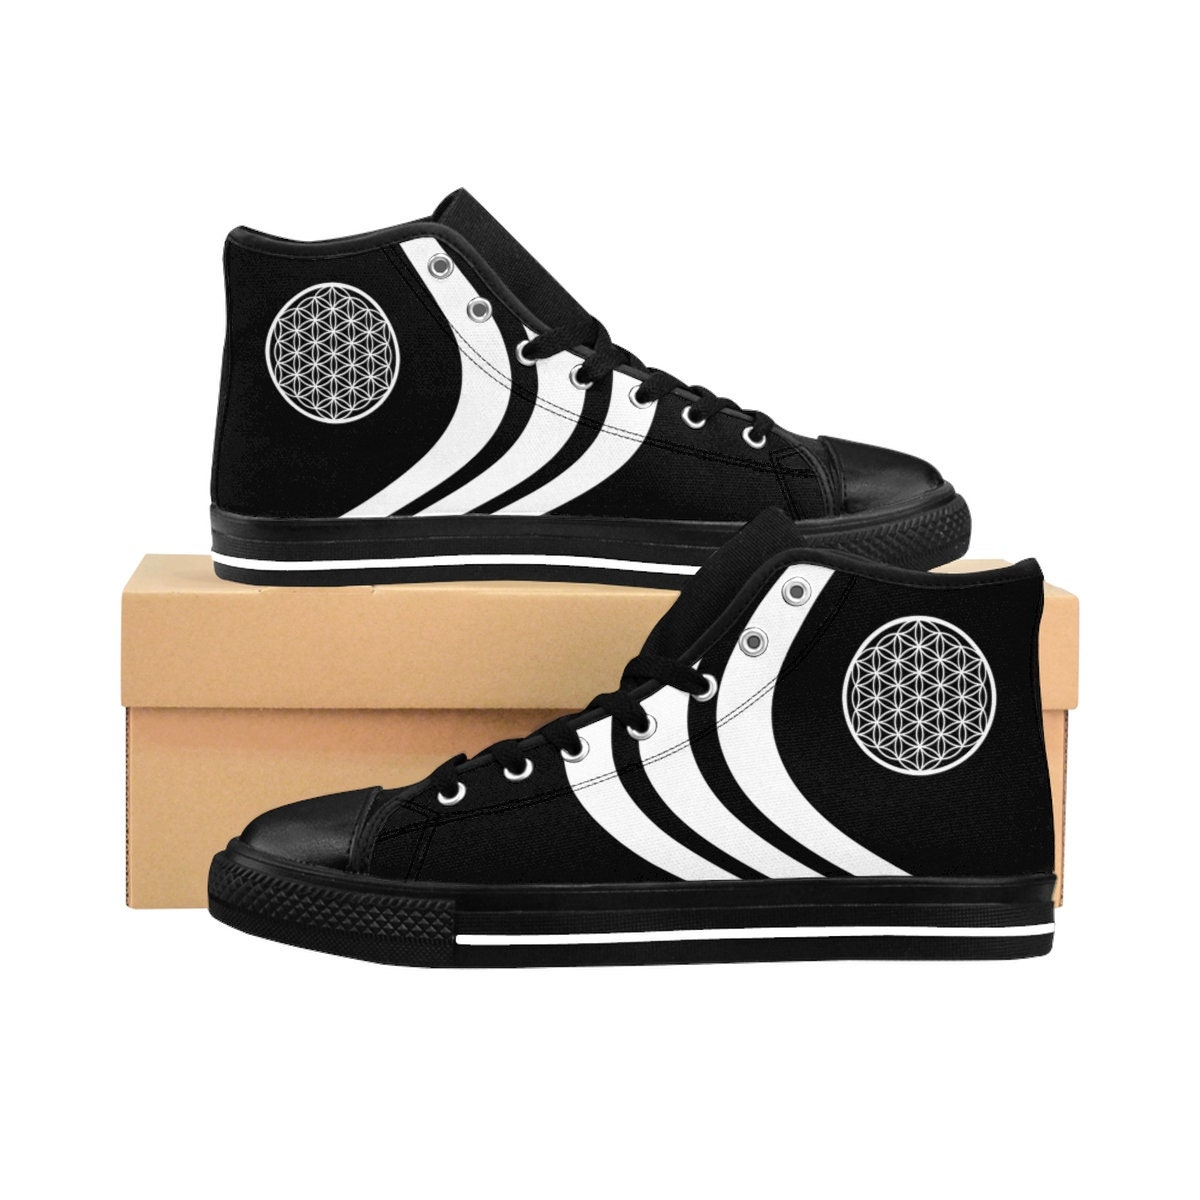 6c19e206981c Adidas Shoes and Converse Shoes Inspired Sacred Geometry